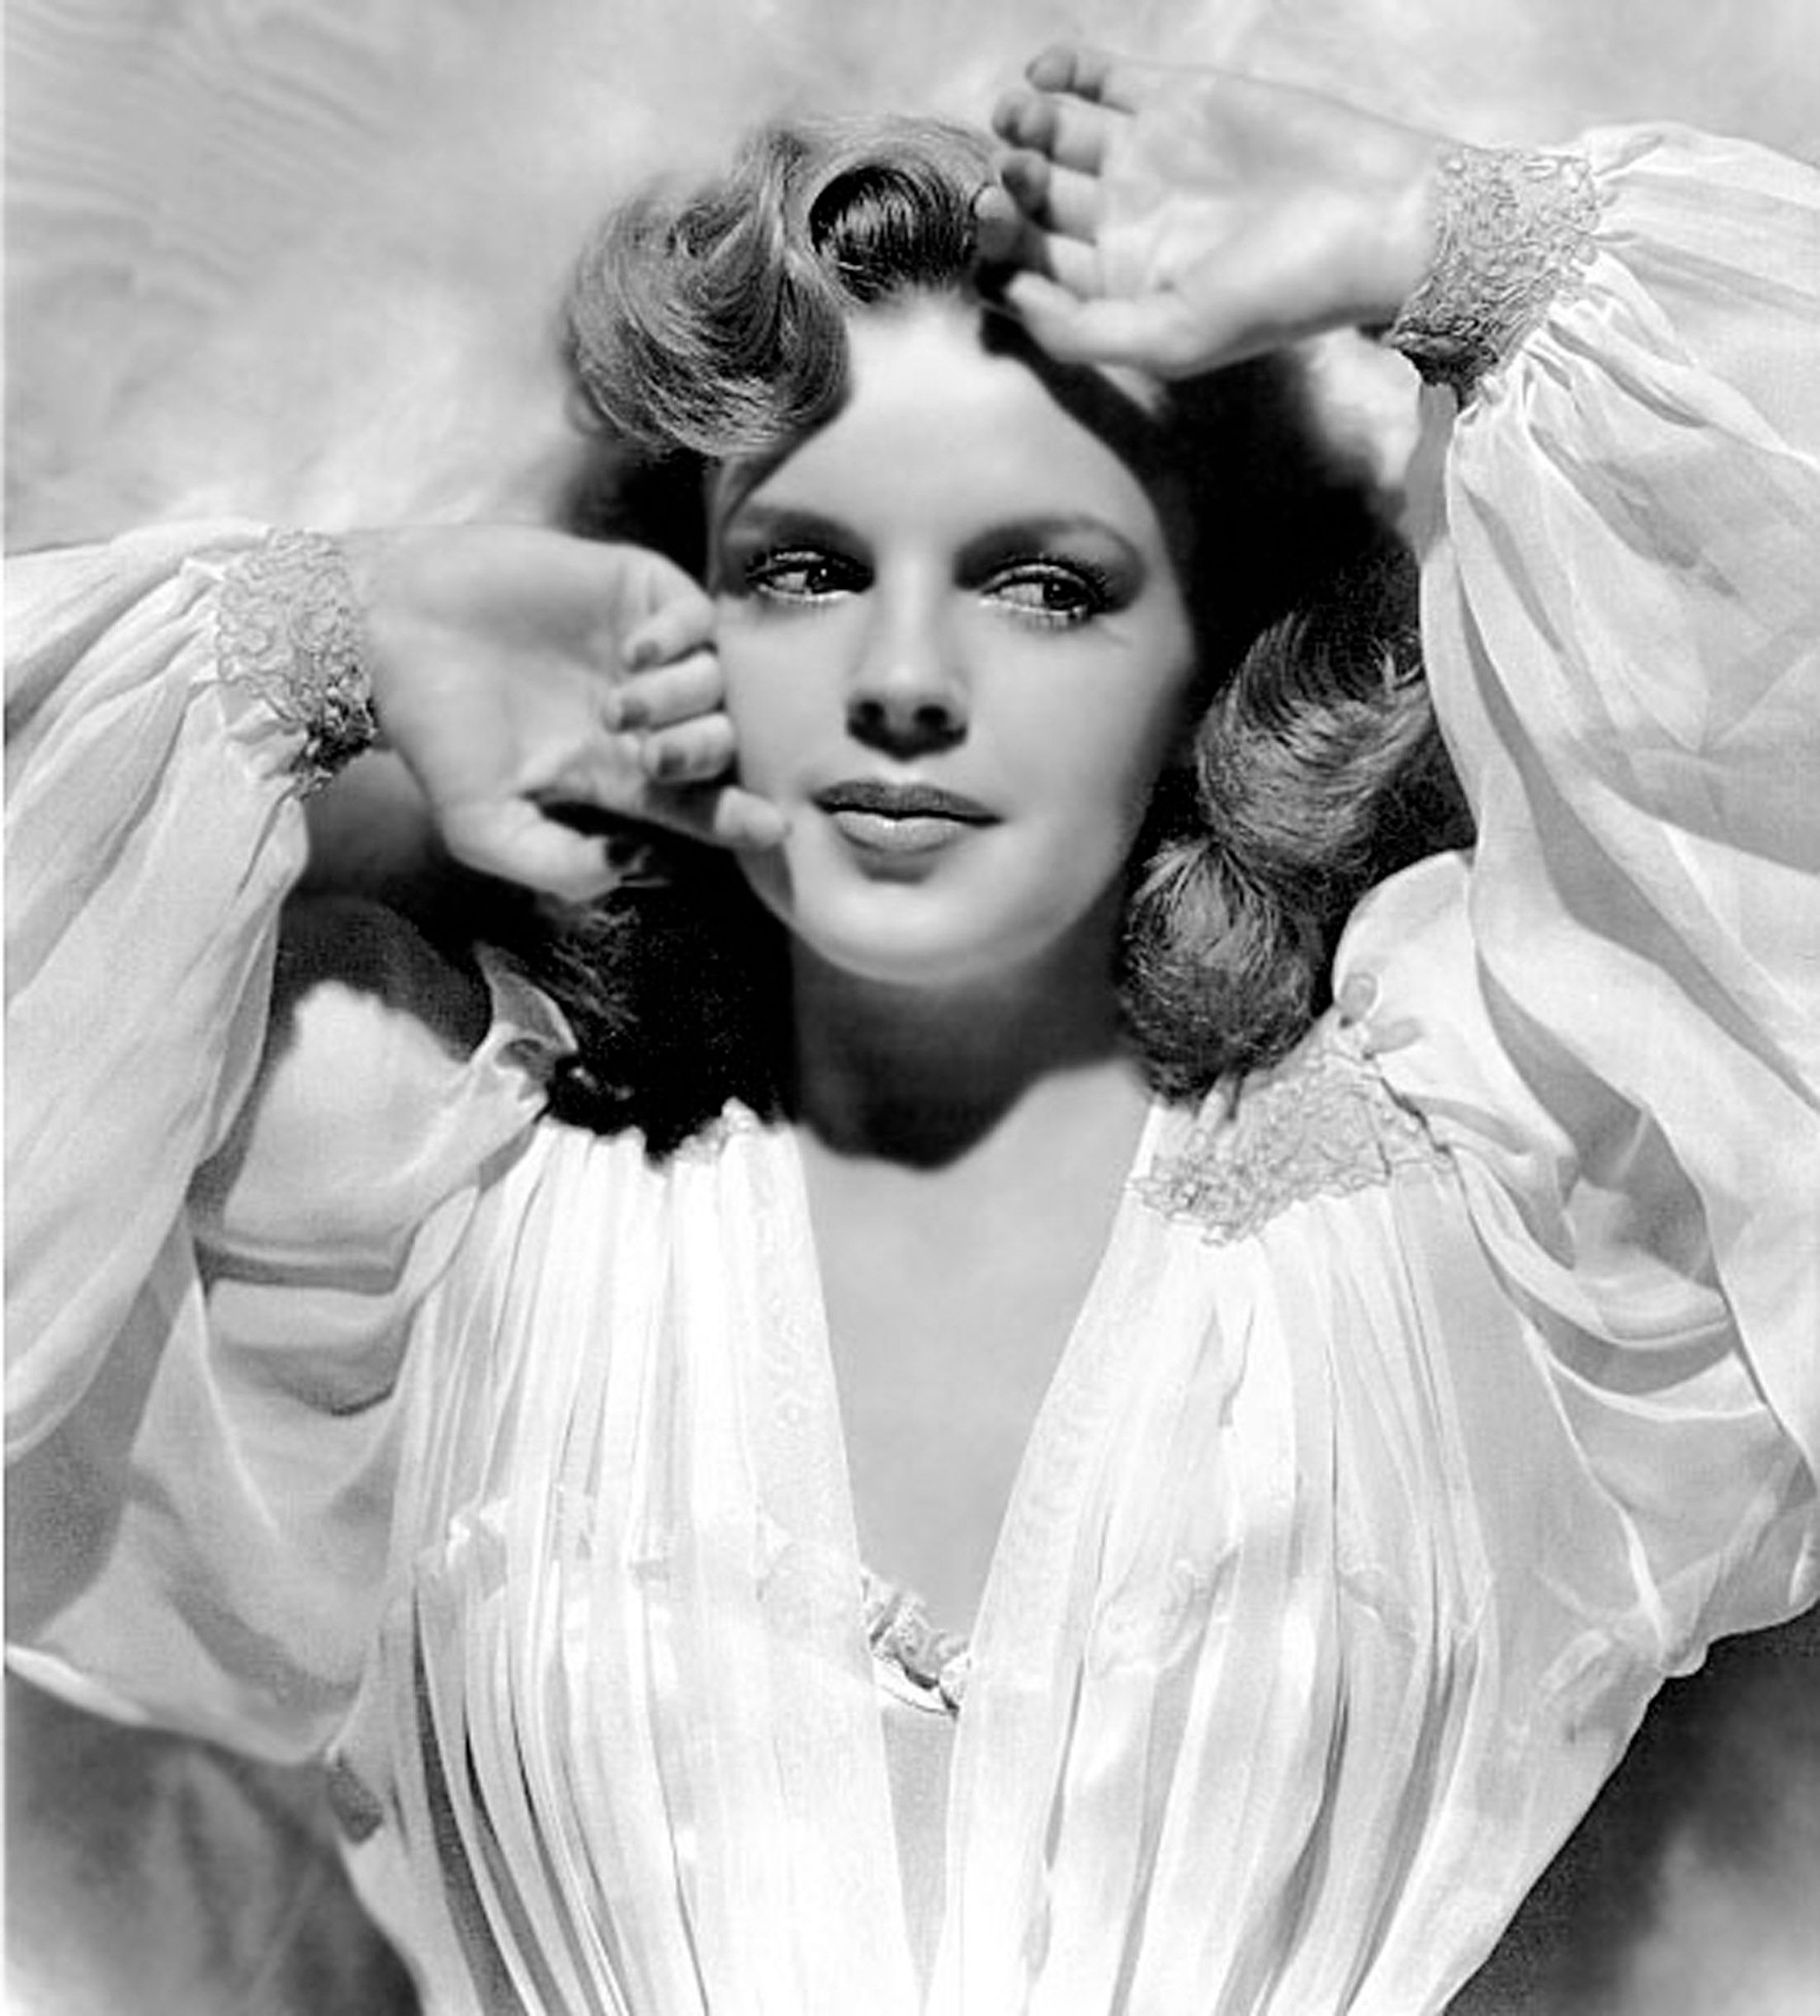 A monochrome portrait of Judy Garland on January 01, 1942 | Photo: Getty Images